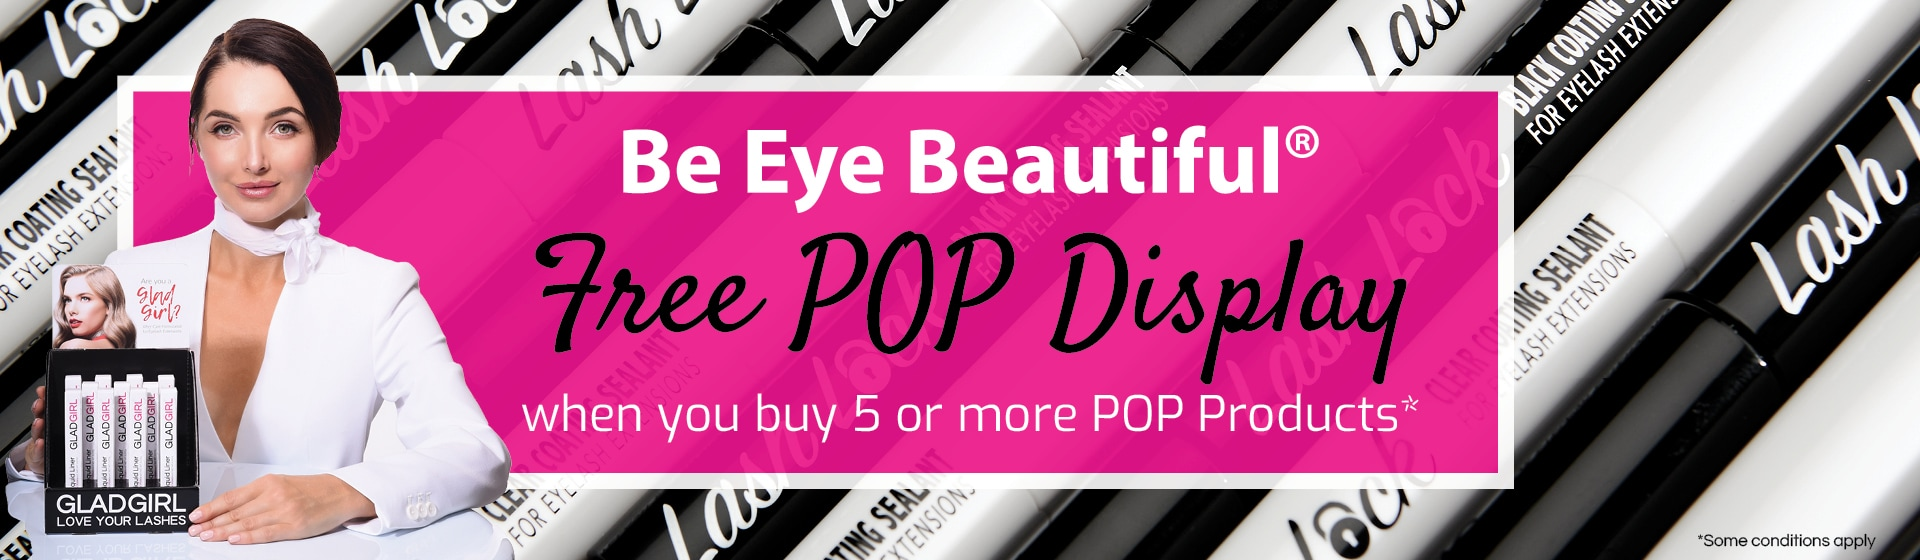 Free POP Display when you buy 5 POP Products